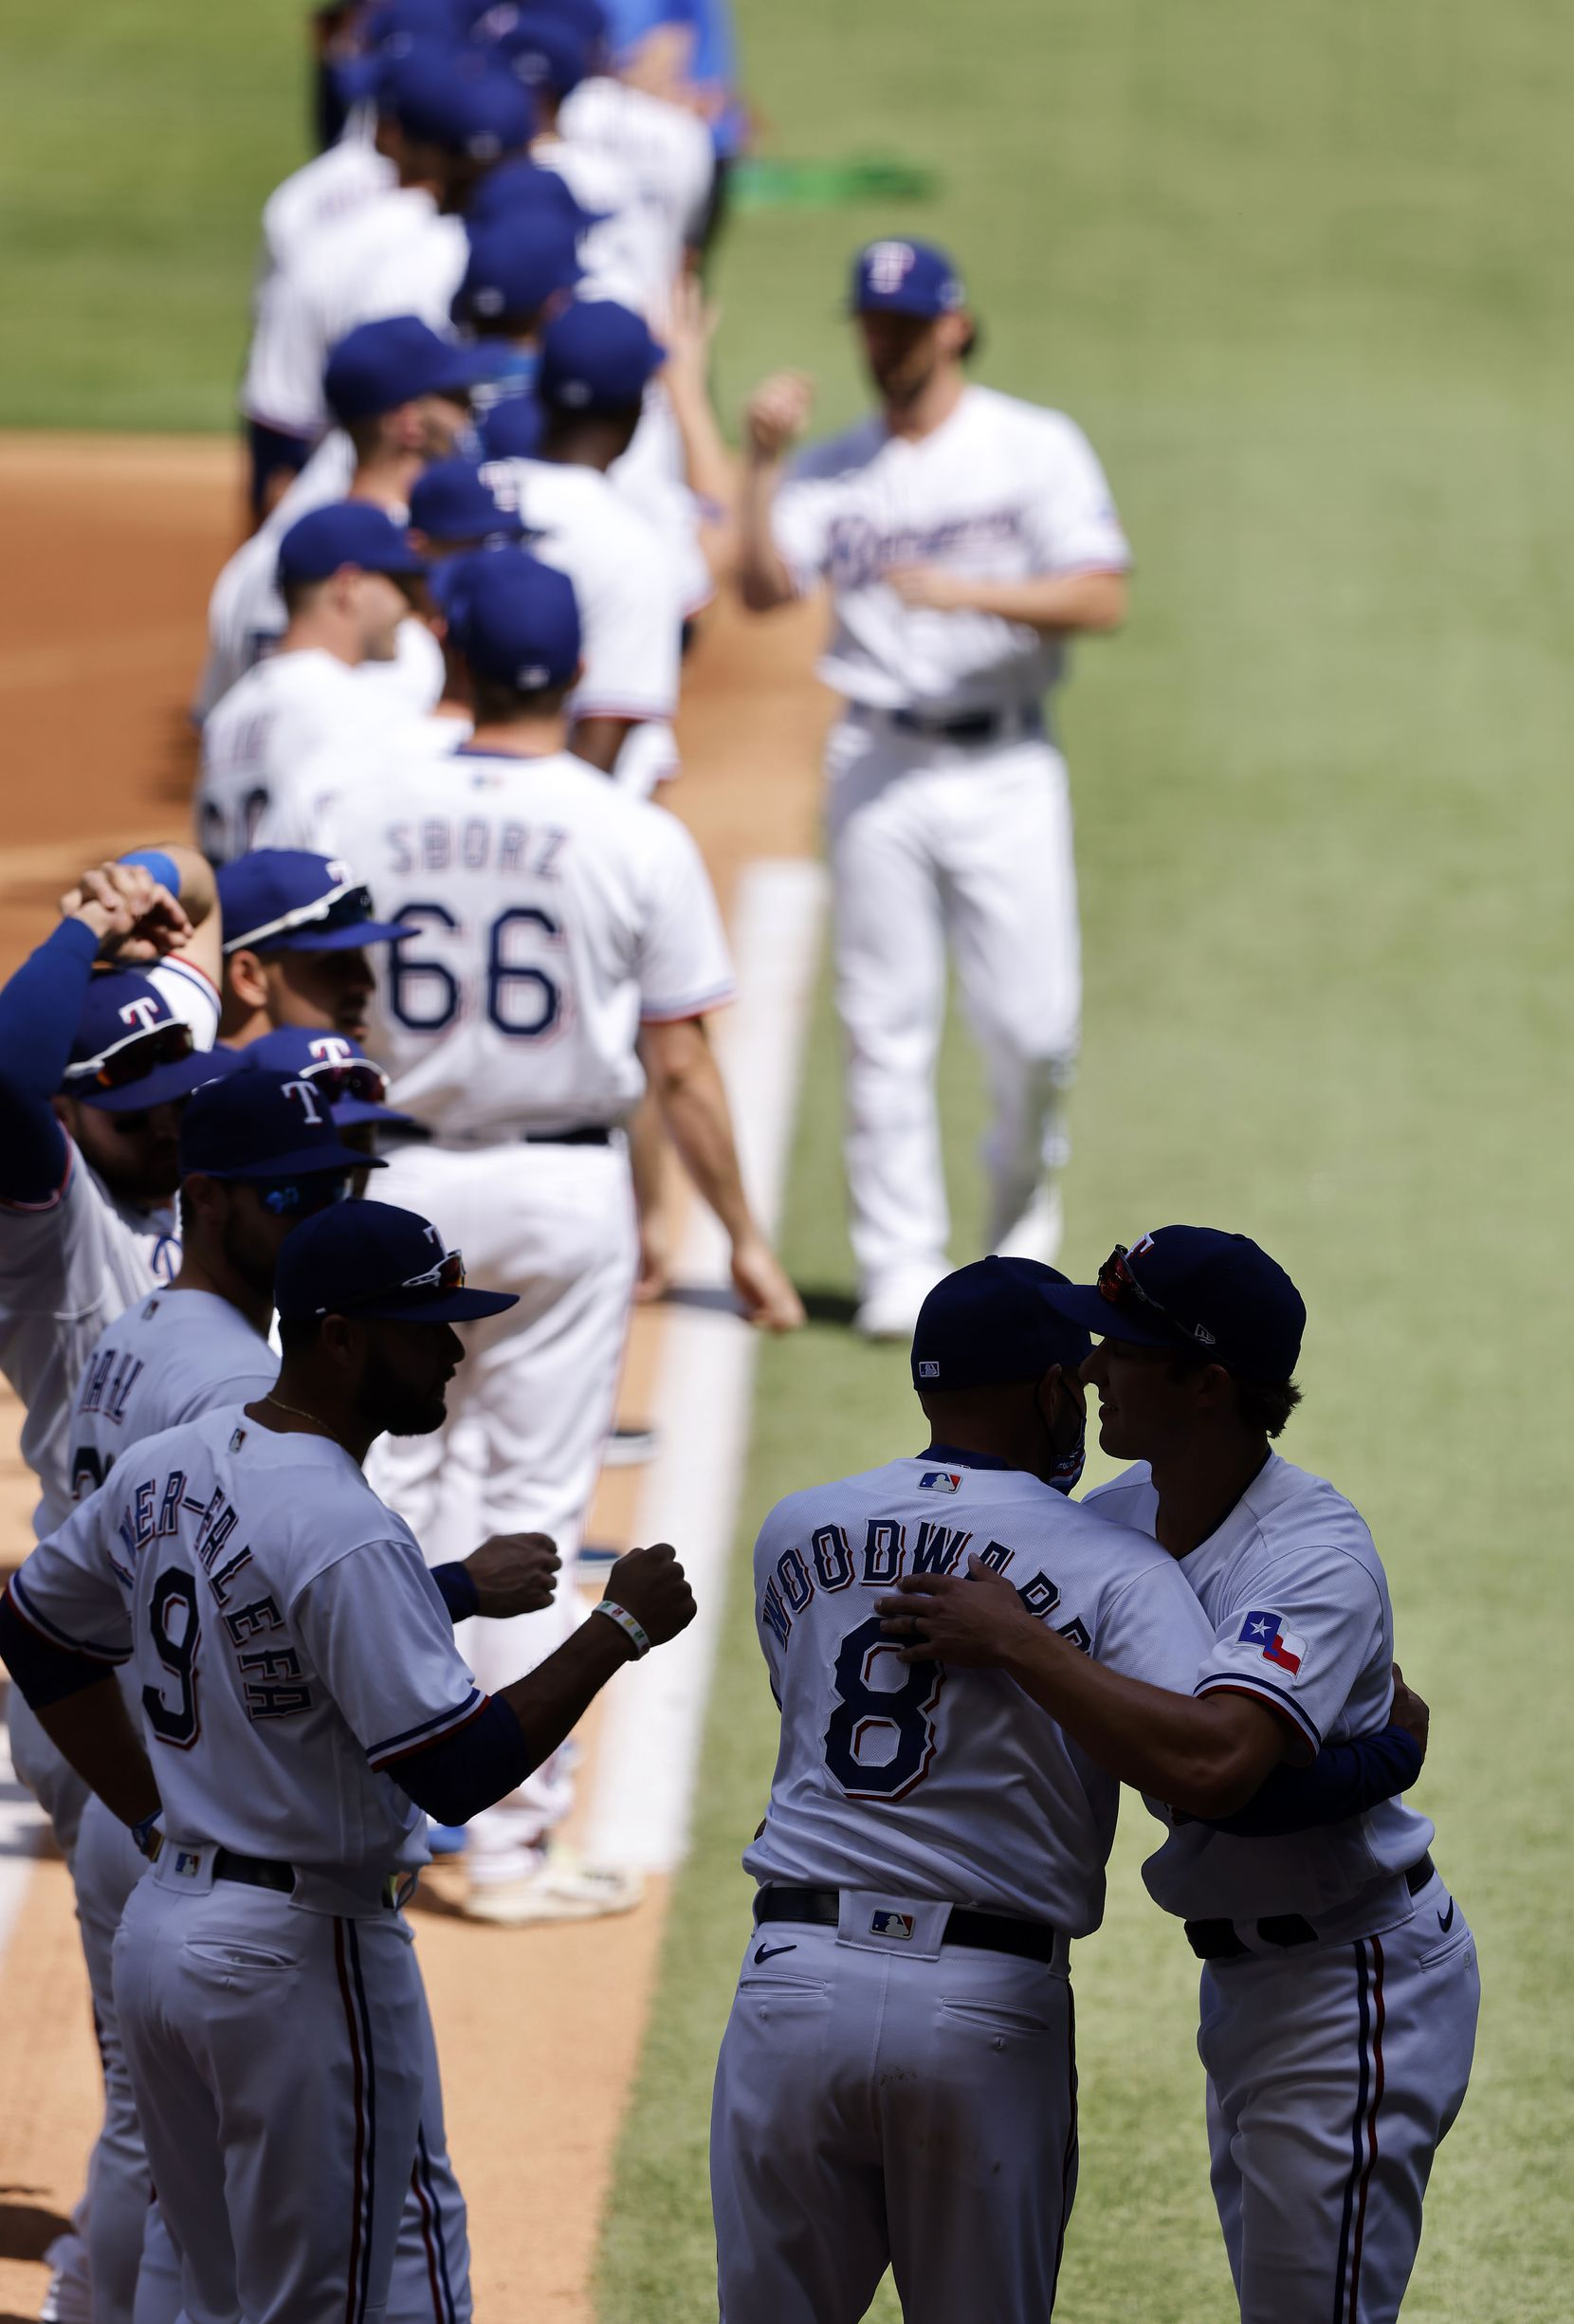 Texas Rangers manager Chris Woodward hugged his players as they're introduced during pregame ceremonies at Globe Life Field in Arlington, Monday, April 5, 2021. The Texas Rangers were facing the Toronto Blue Jays in their home opener. (Tom Fox/The Dallas Morning News)